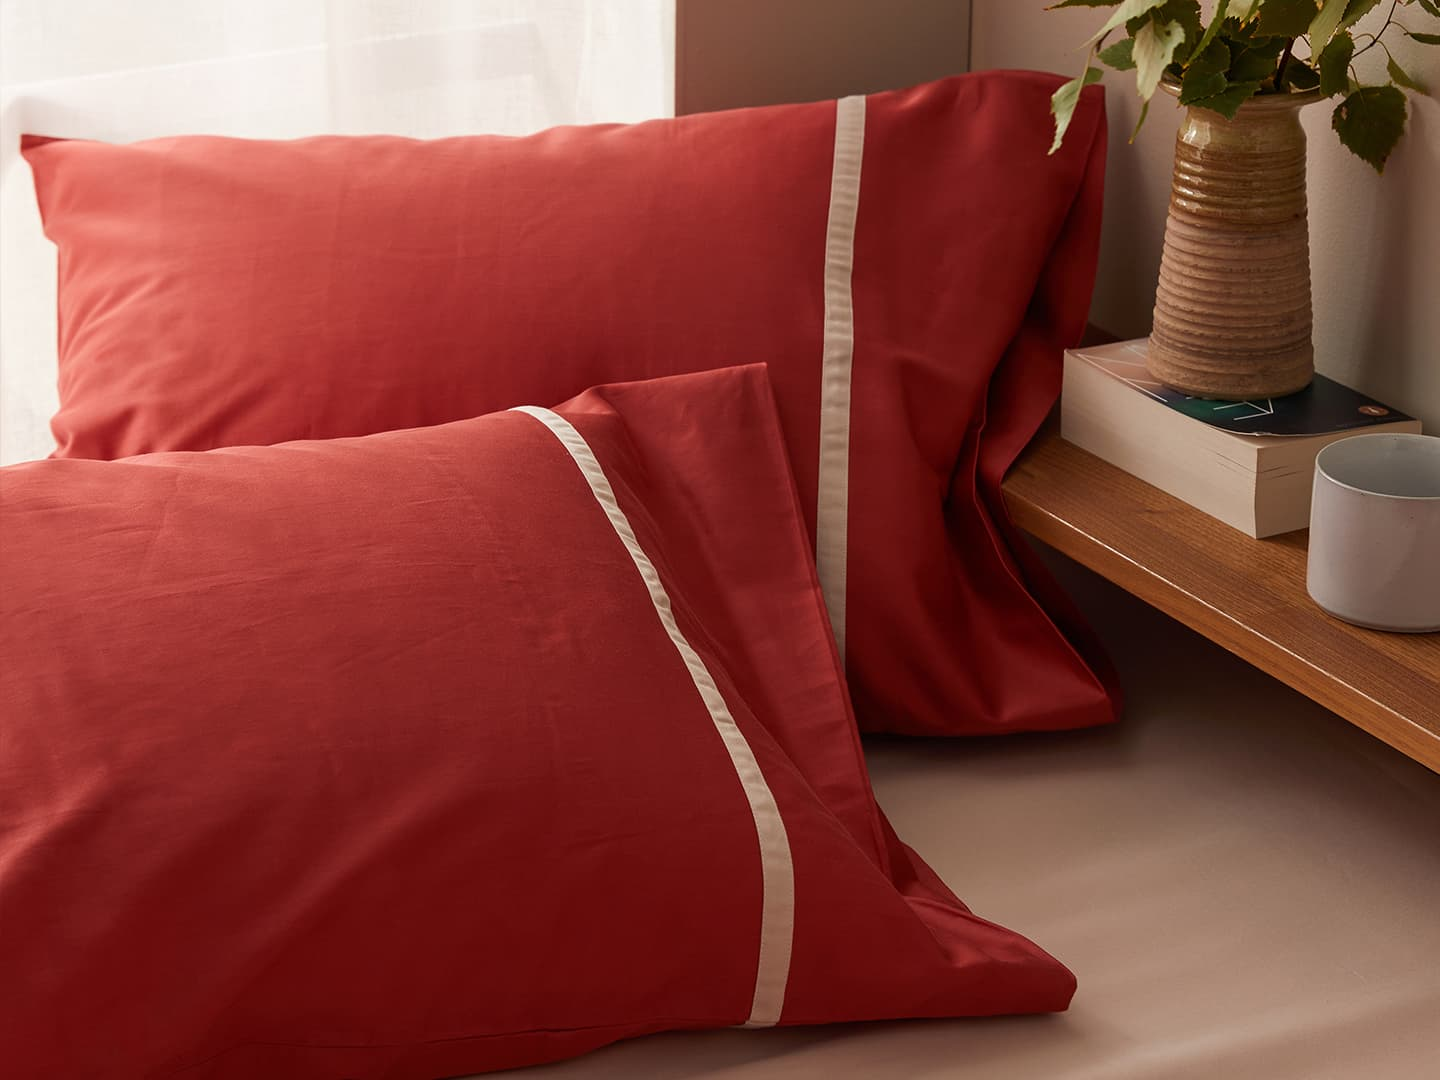 Pillowcase Gatt - Indian Red in the group Bedding / Pillowcases at A L V A (1119)